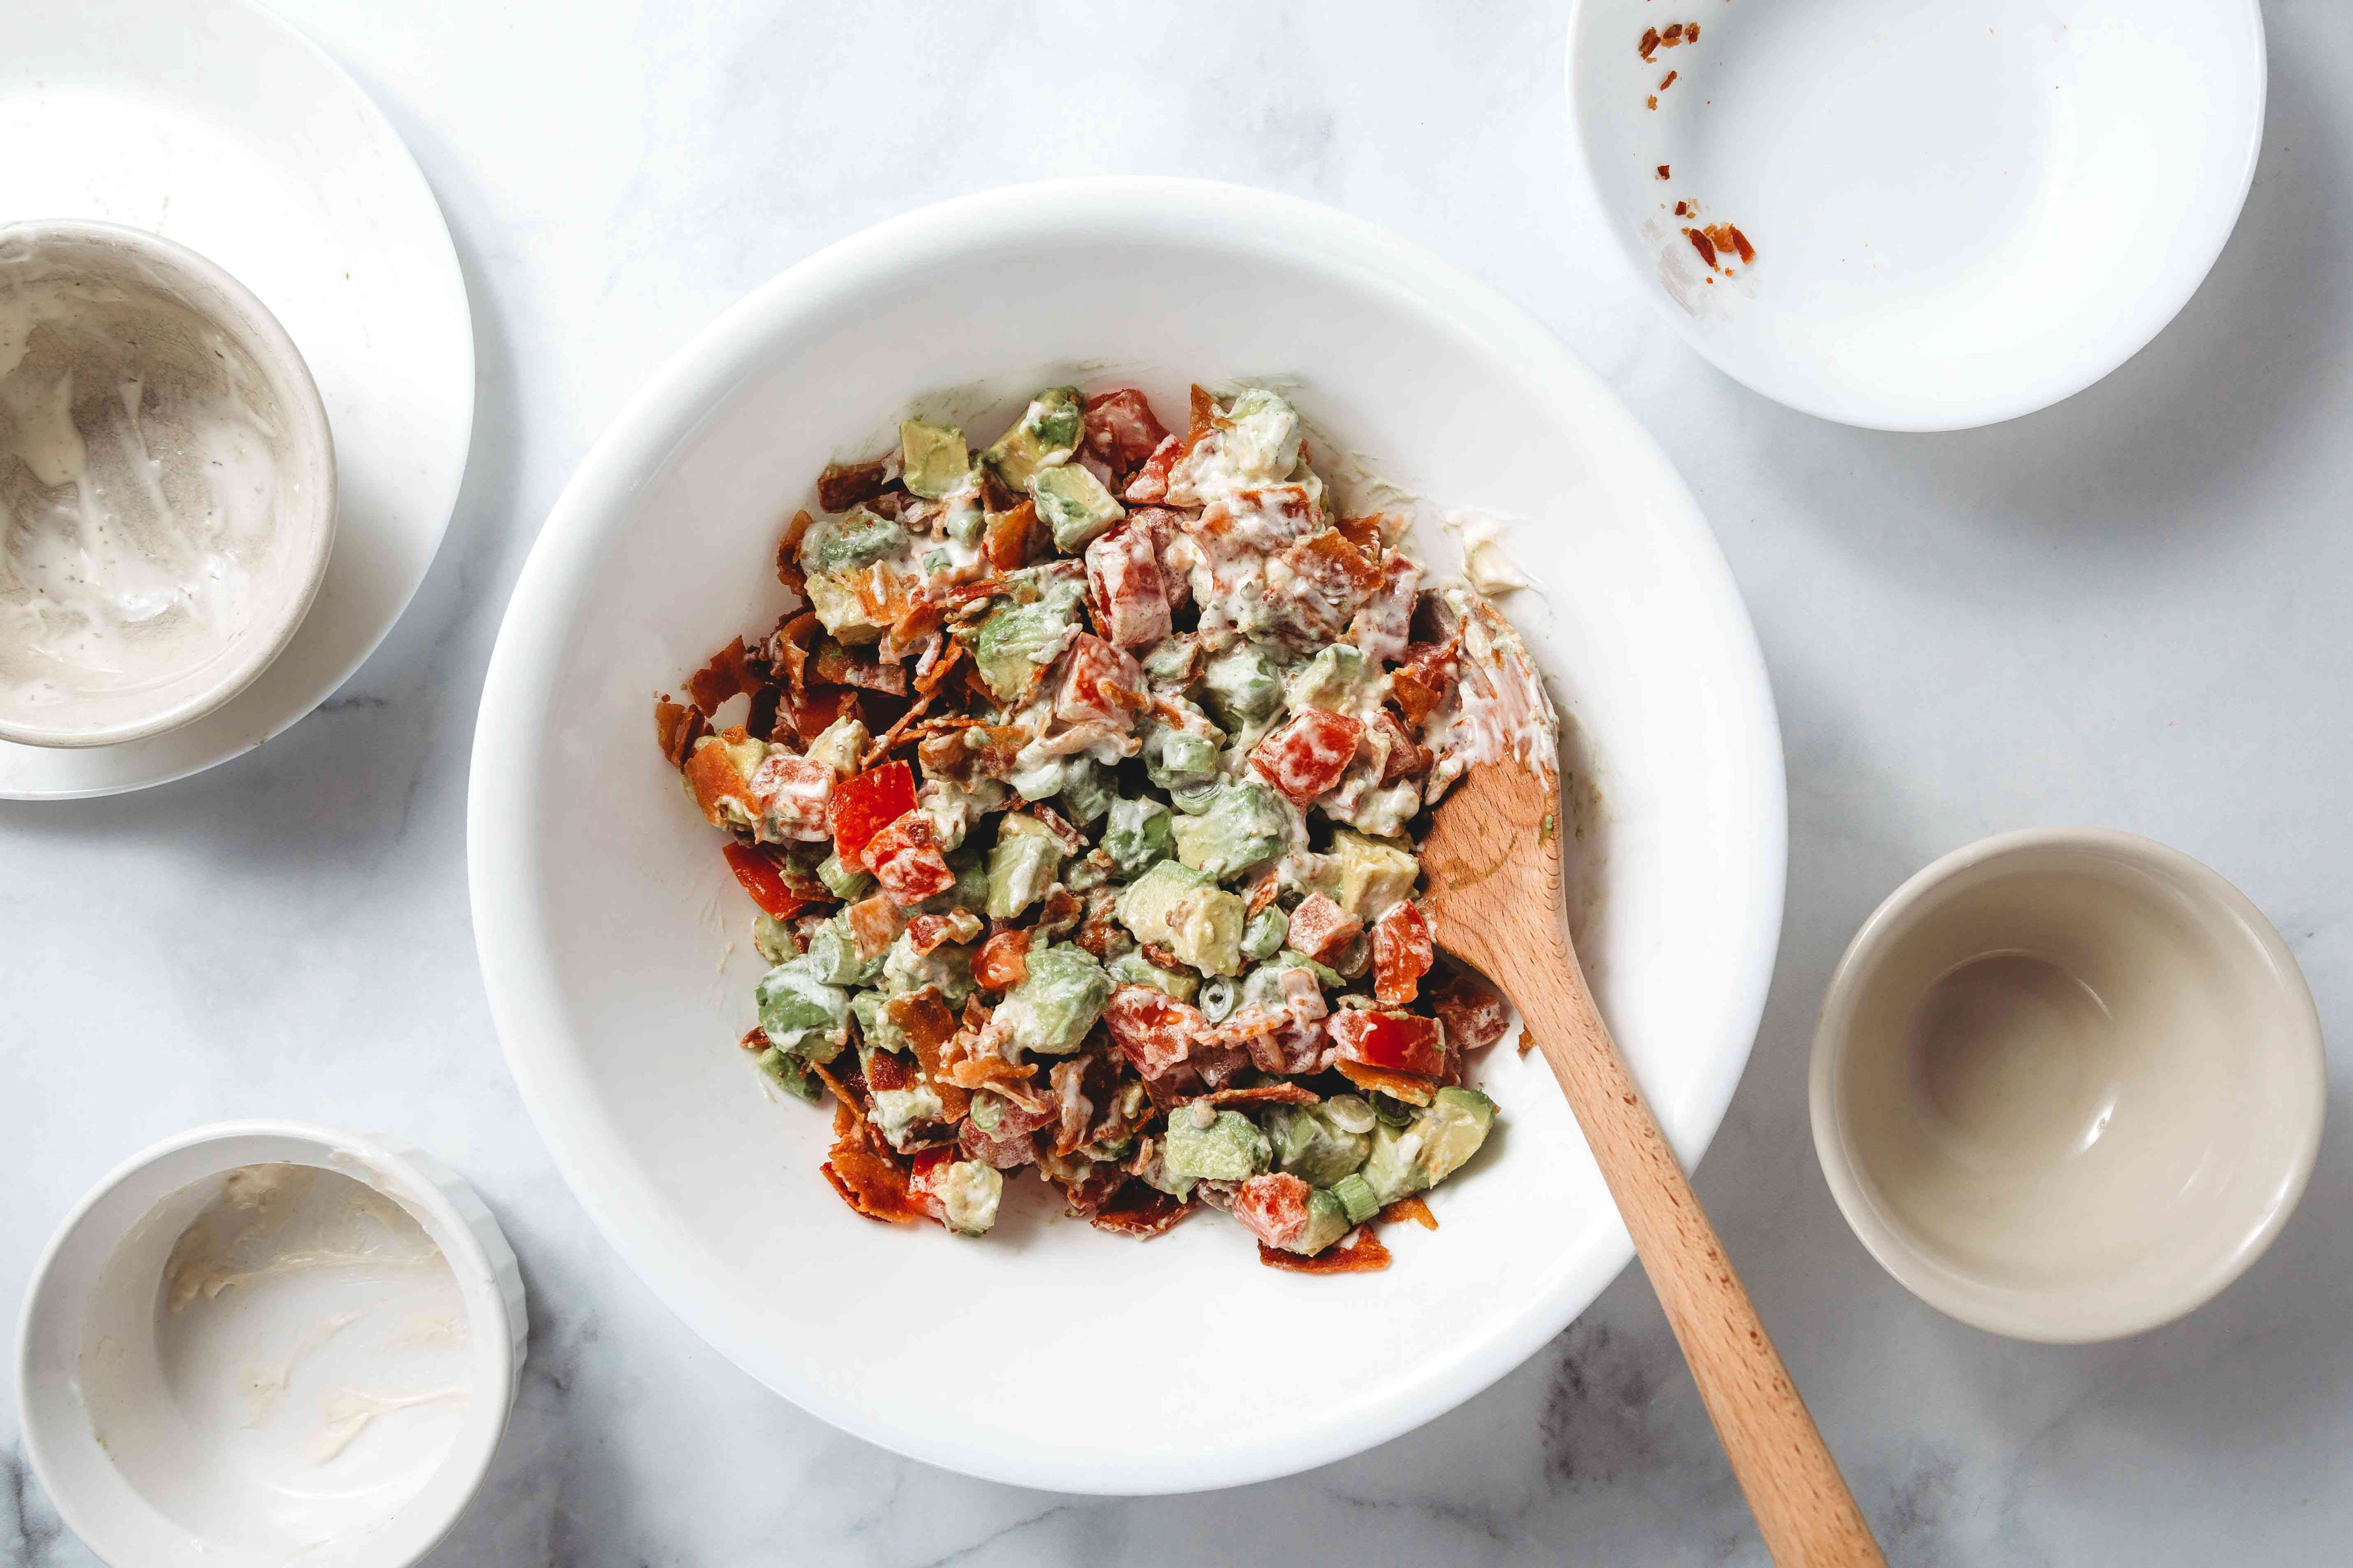 Tomatoes, avocado, green onion, cooked bacon, ranch dressing, and mayonnaise in a bowl